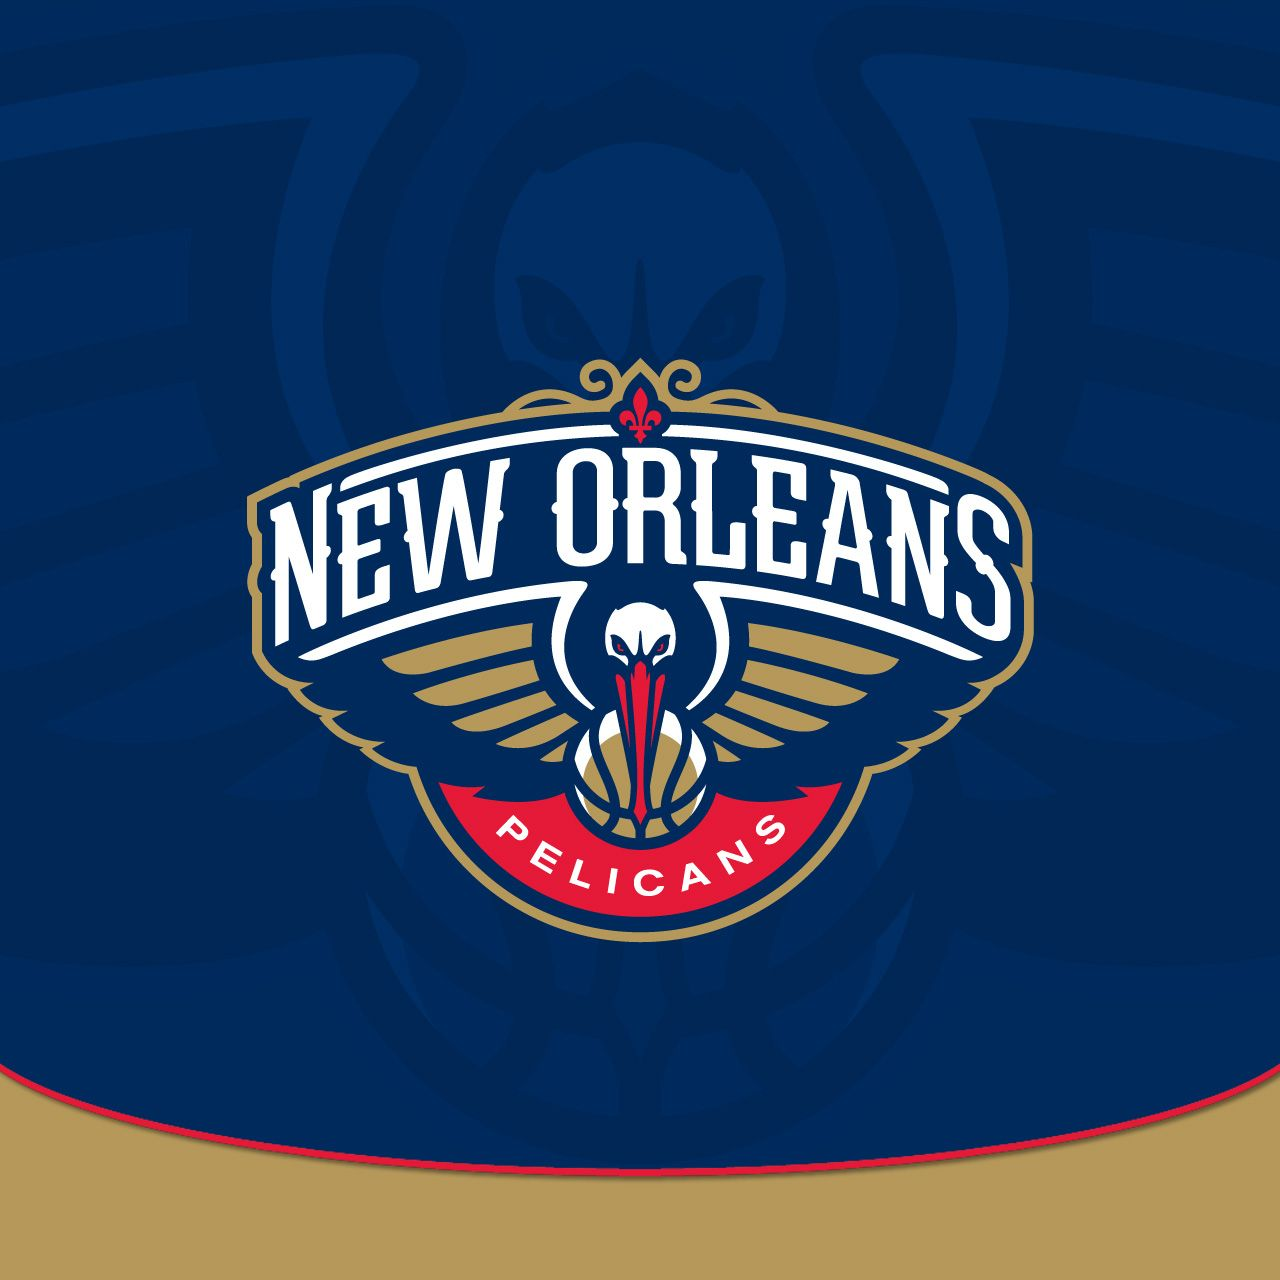 New orleans pelicans wallpaper tablet pelicans downloads new orleans pelicans wallpaper tablet voltagebd Image collections